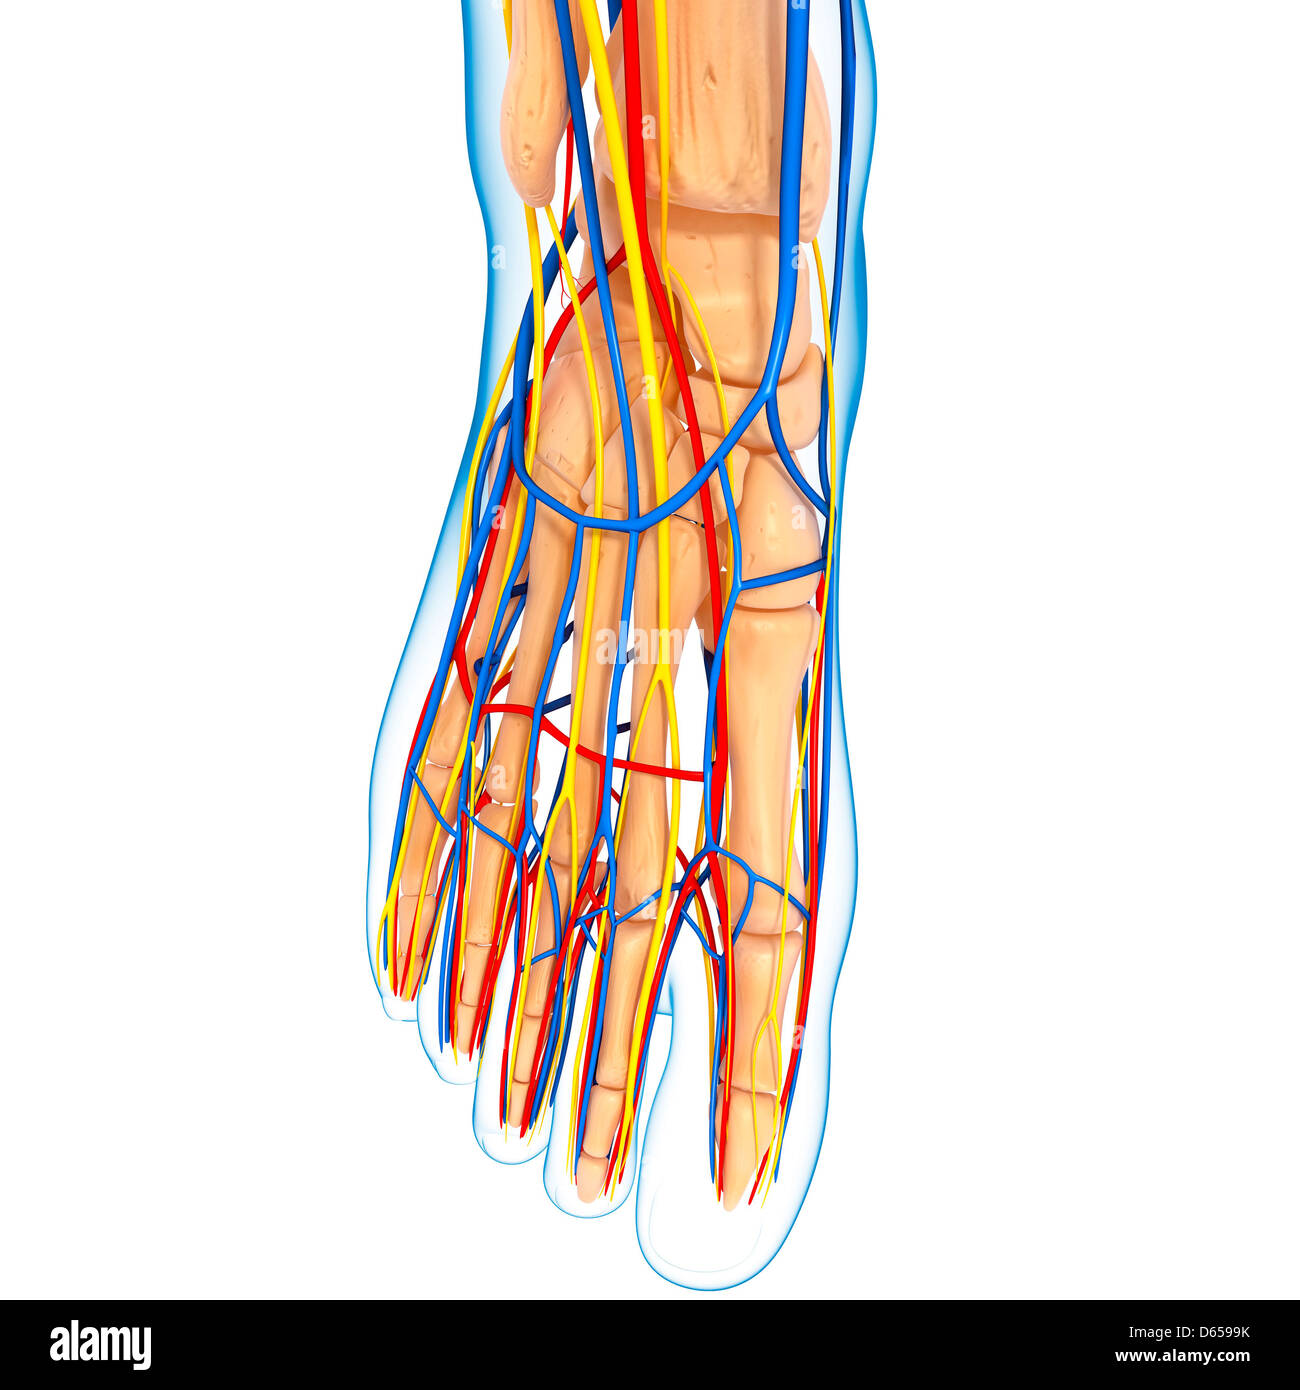 Human Foot Anatomy Stock Photos Human Foot Anatomy Stock Images